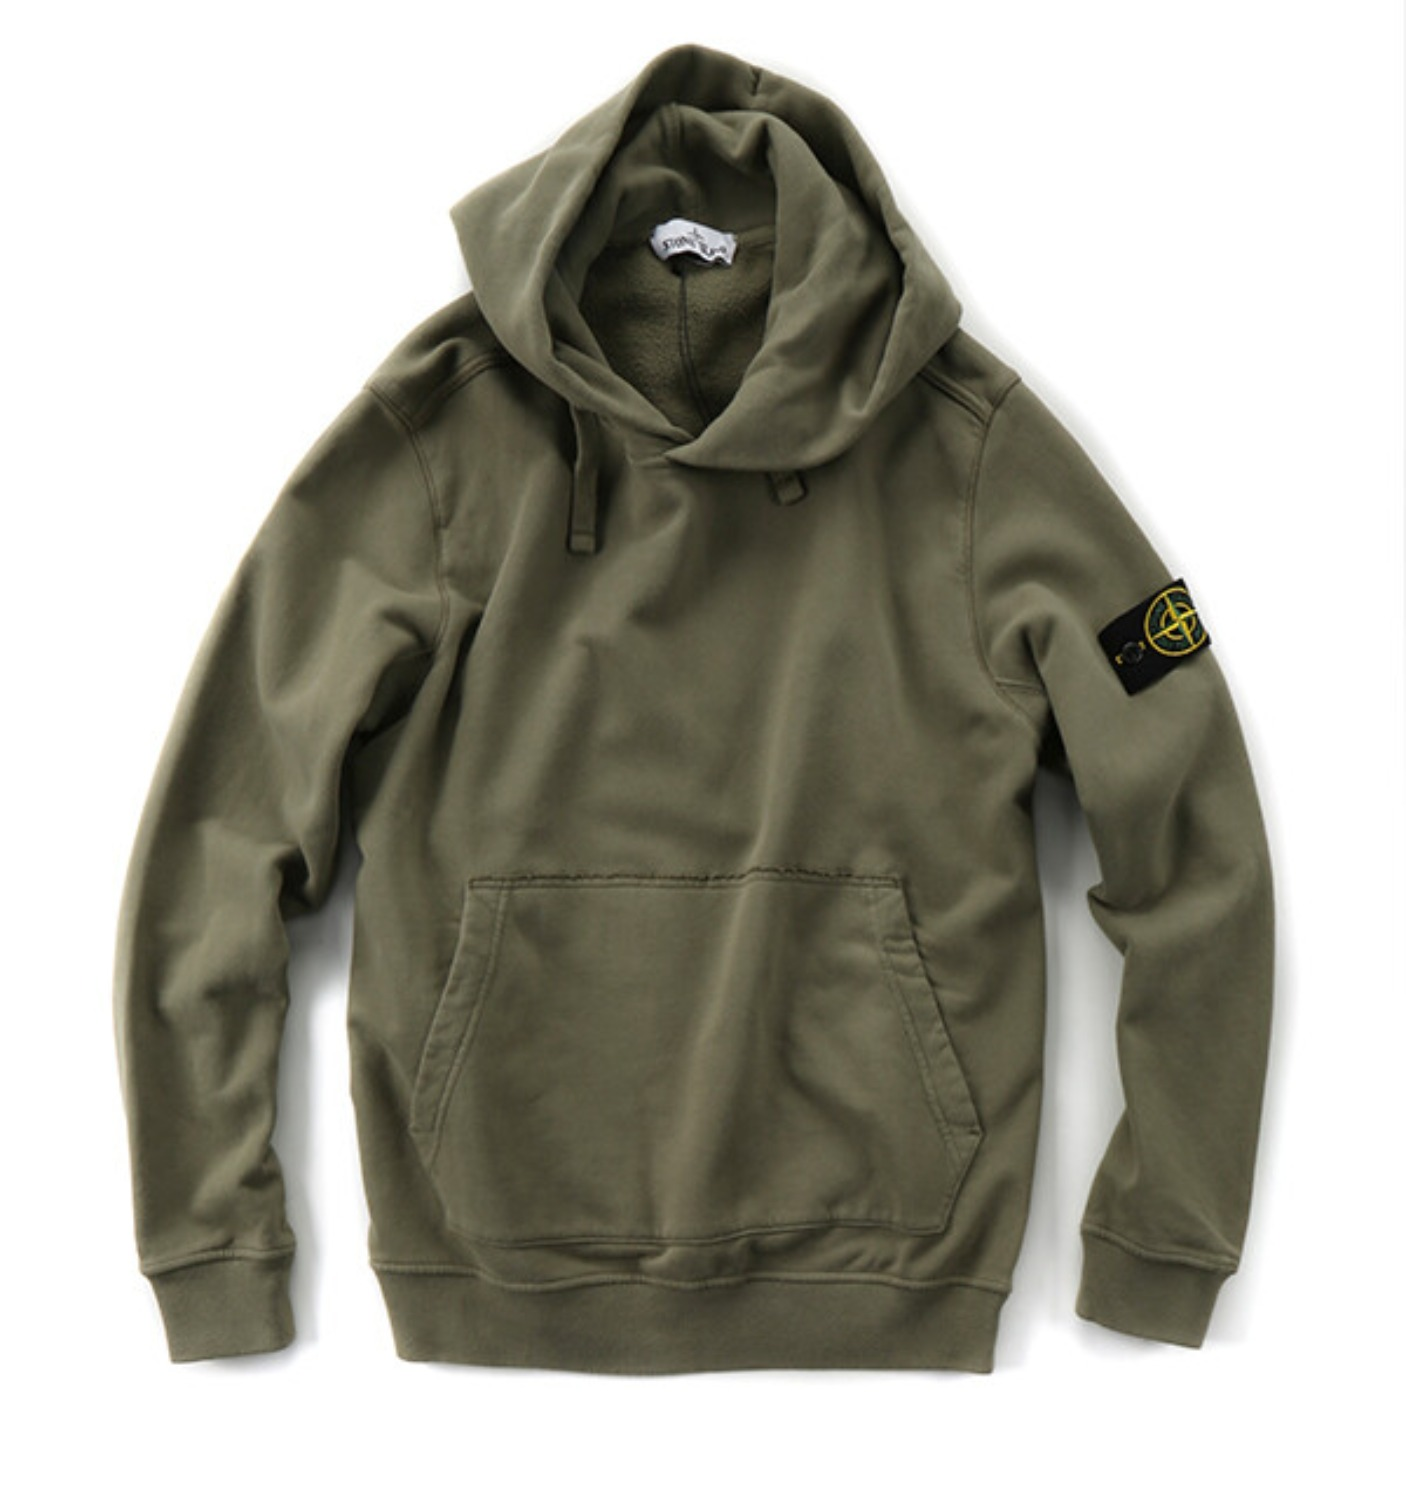 BRUSHED COTTON FLEECE GARMENT DYED HOODED SWEATSHIRT OLIVE